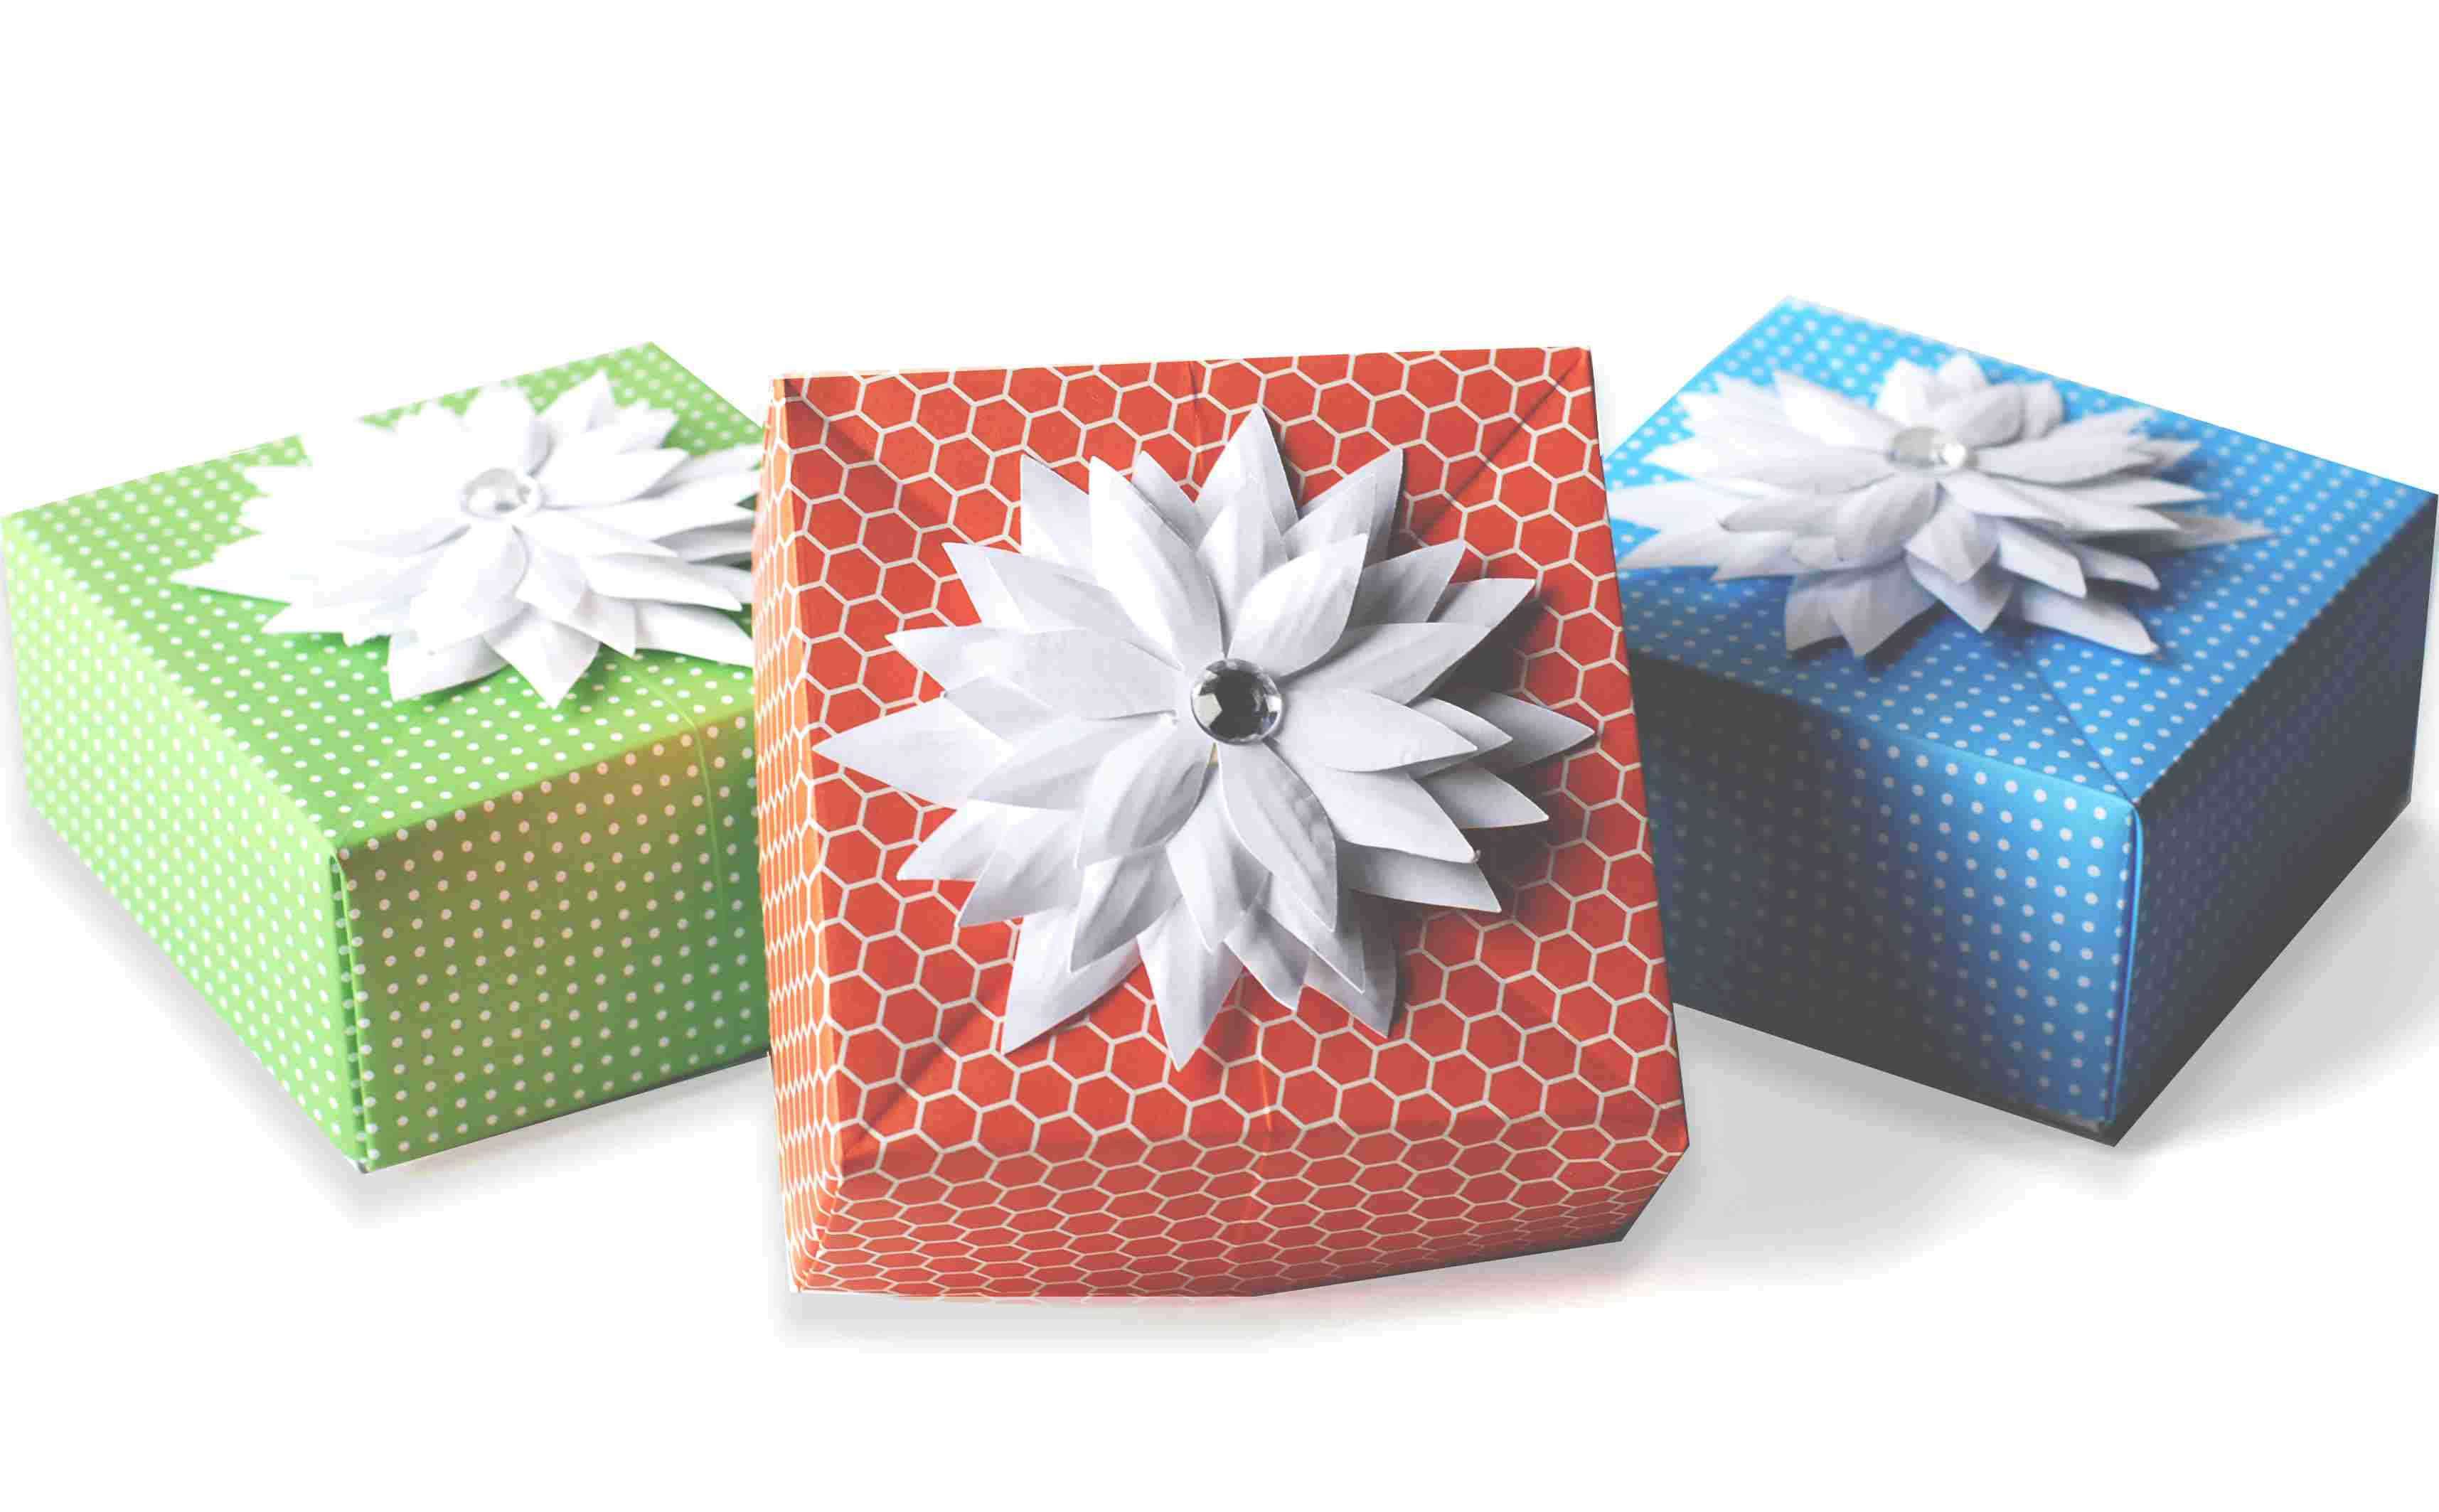 DIY Origami Gift Box Paper Craft